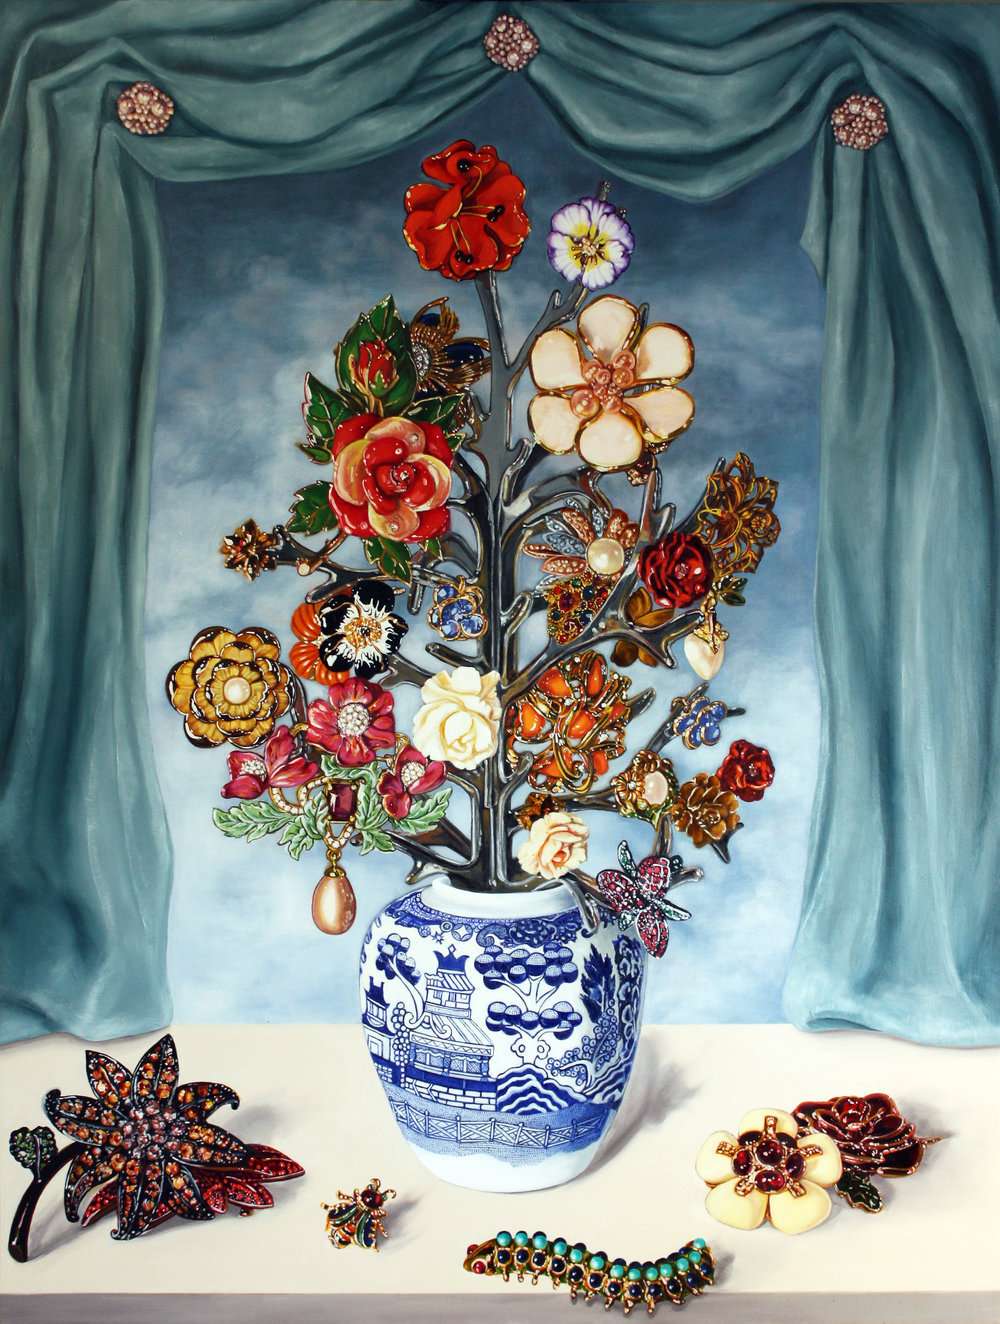 Dutch Floral with Drapery © 2014 Oil on canvas 50 x 38""